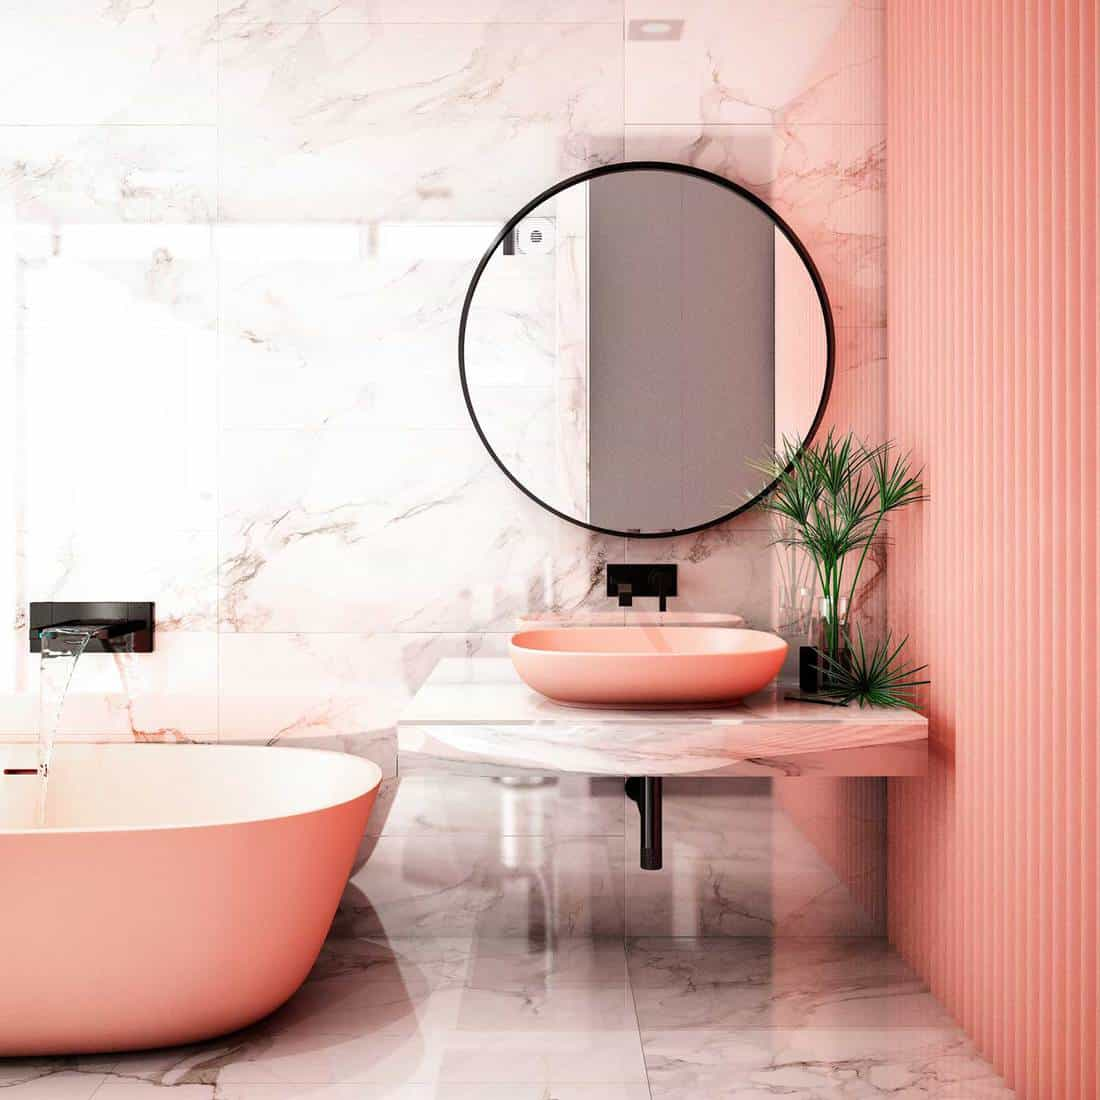 Modern bathroom interior with round mirror above pink wash basin, pink walls and pink bathtub